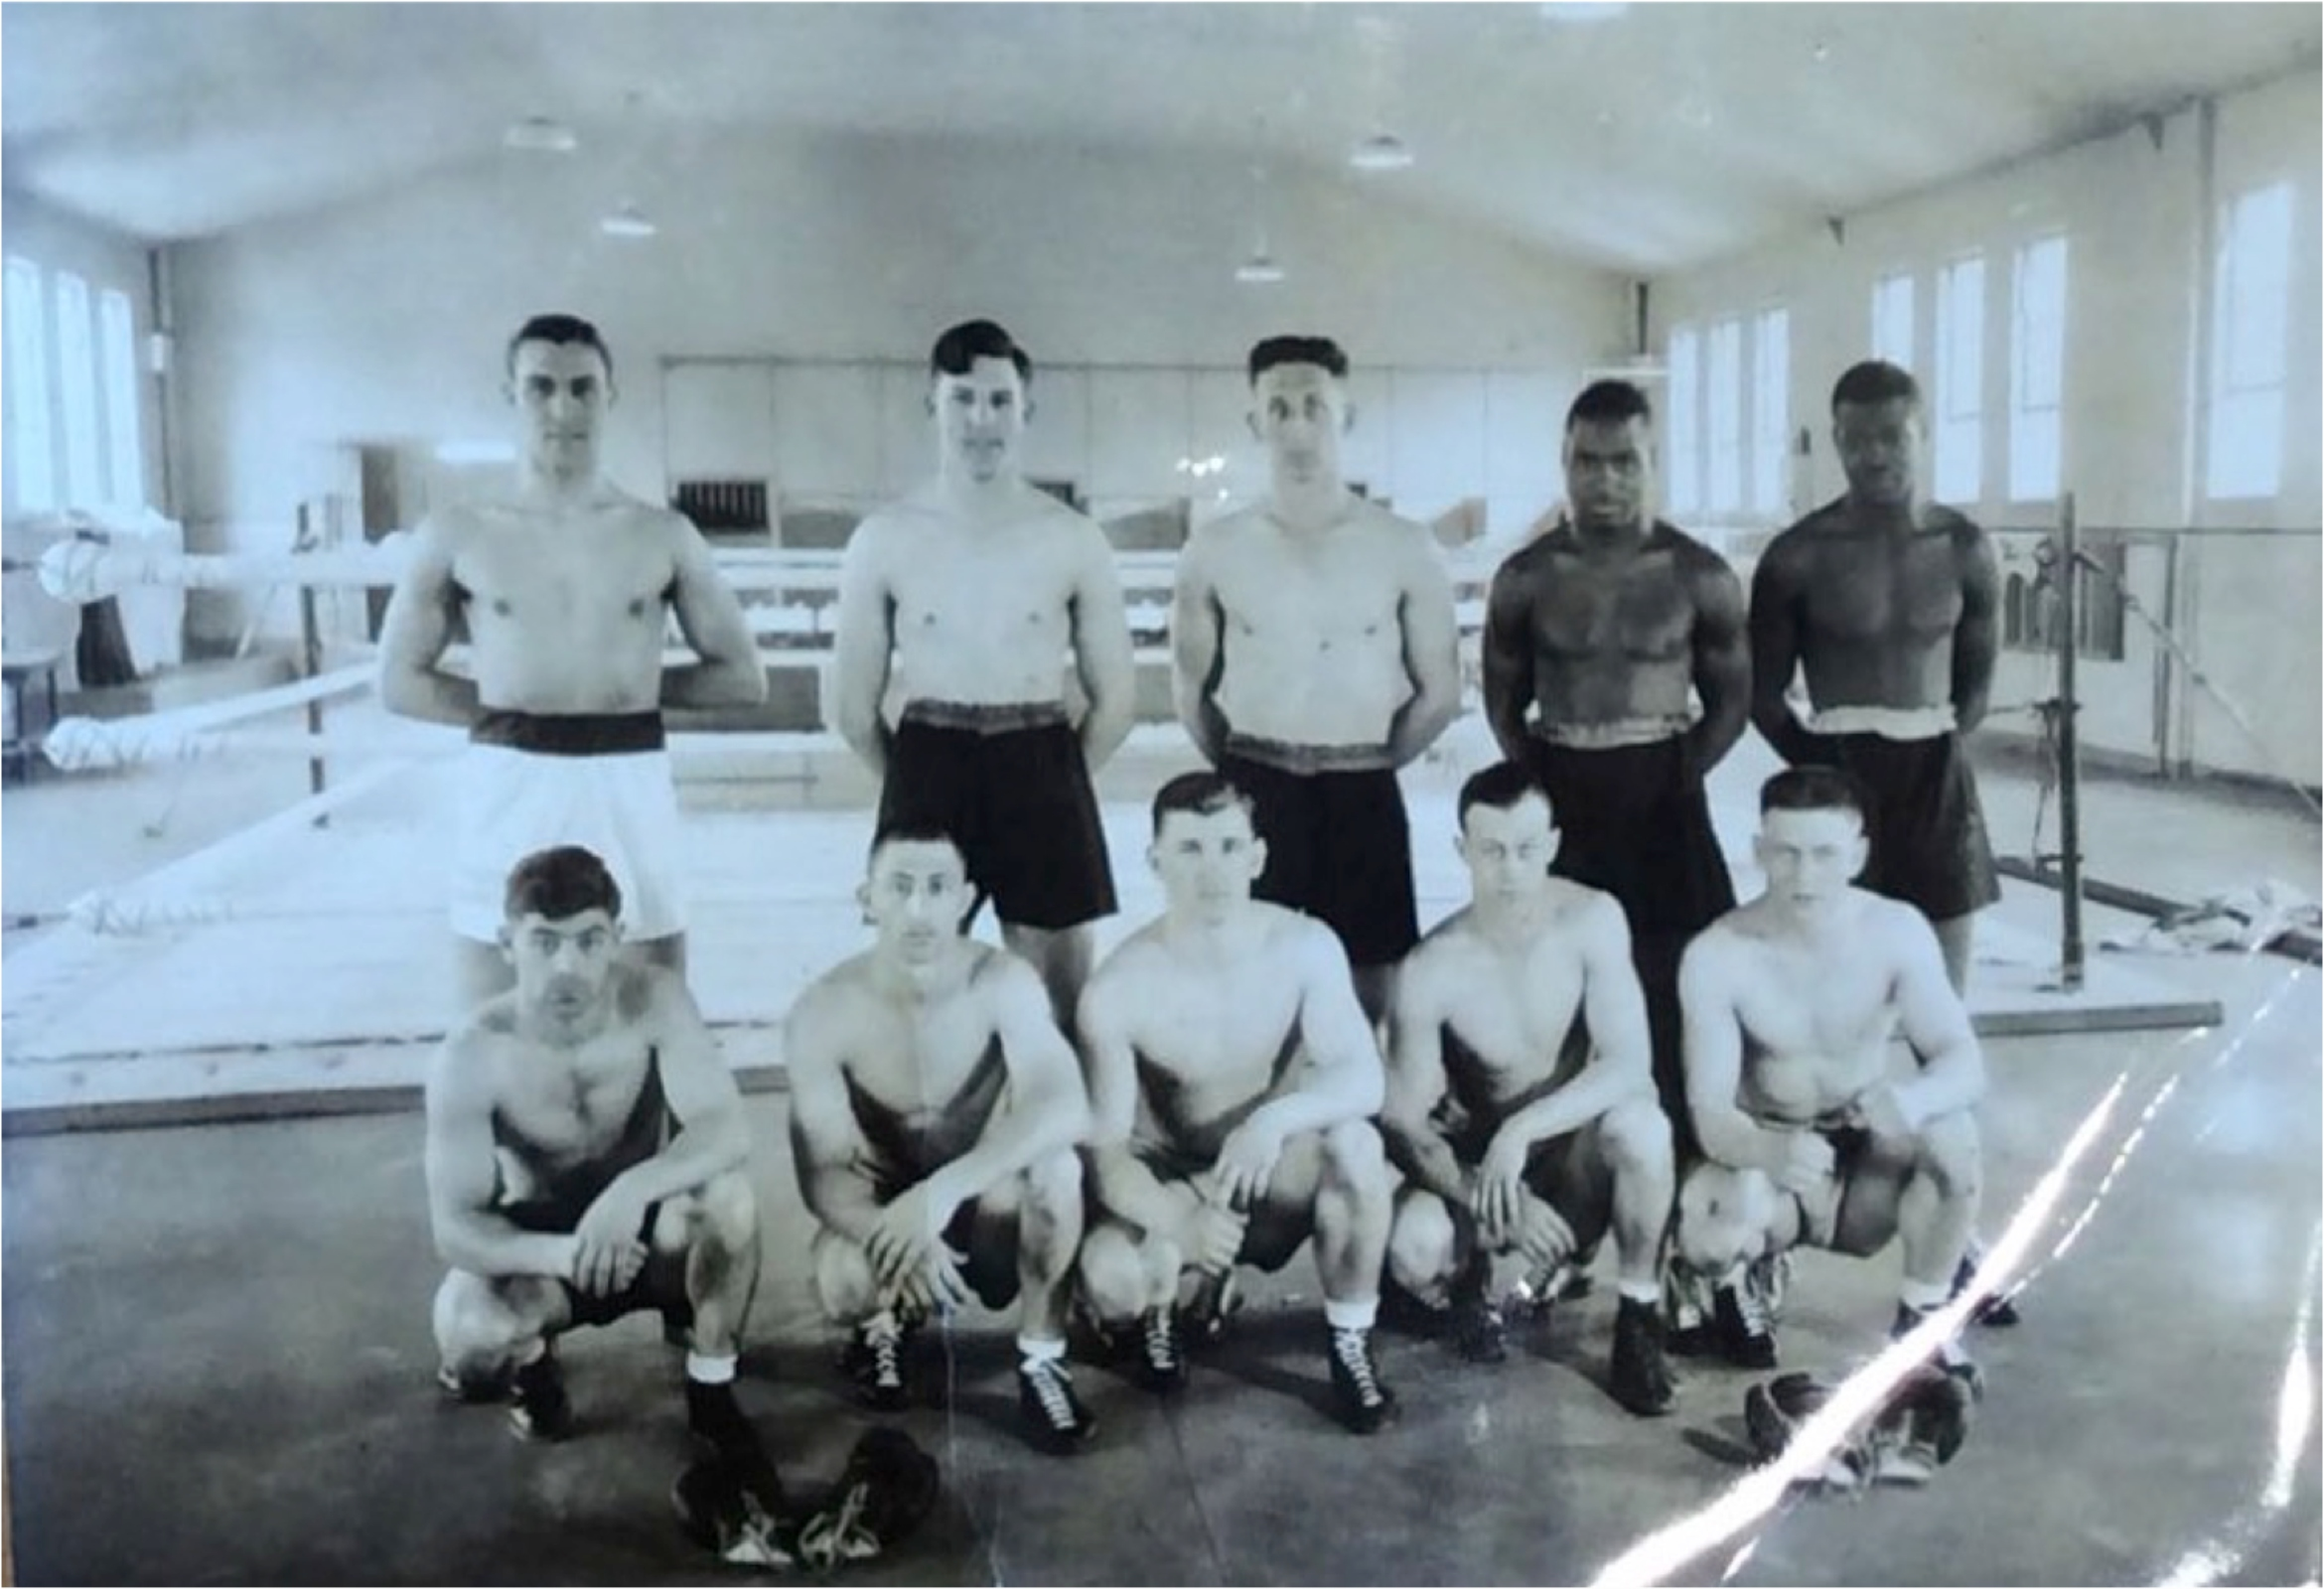 Ten incarcerated men who are members of a prison boxing team. Five men are standing with five kneeling in front of them. All of them are shirtless and wearing boxing shorts and shoes. In the background is a boxing ring. They are inside of a gym.